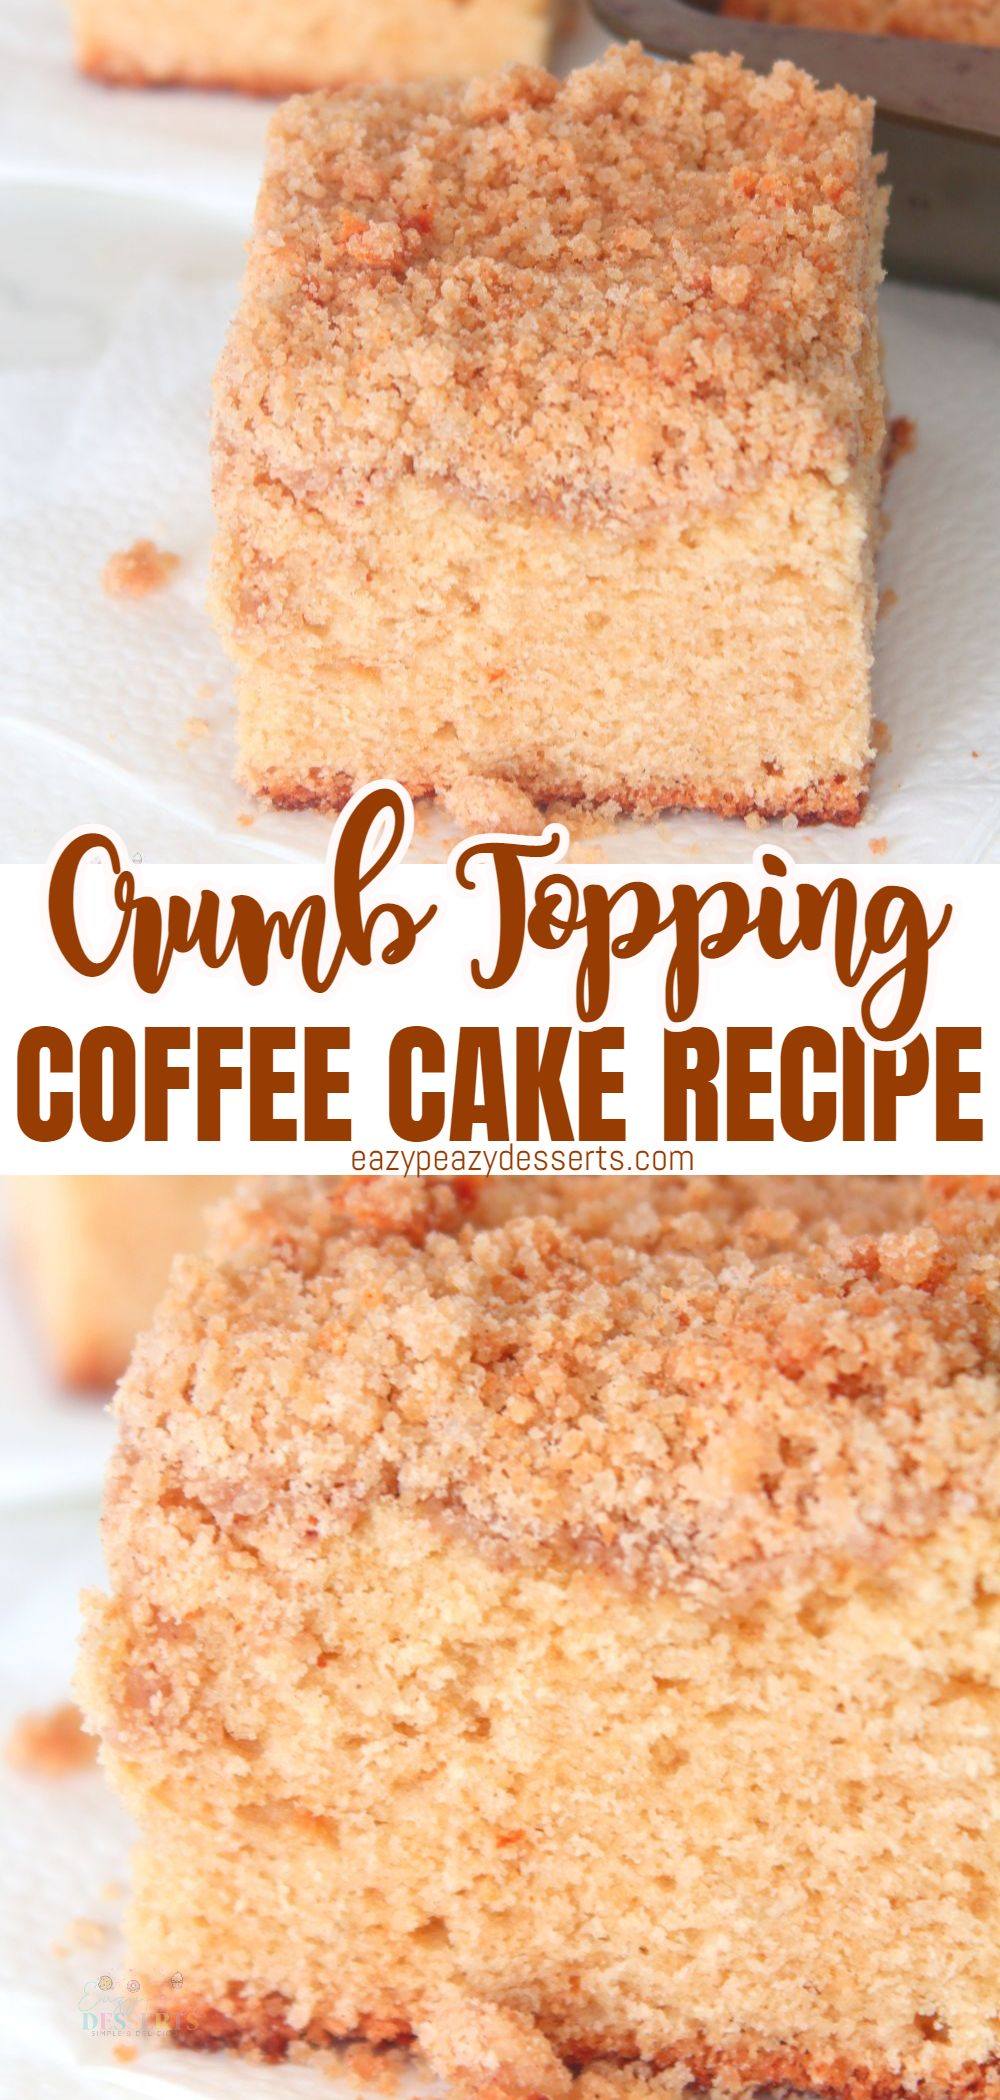 Coffee goes great with a delicious crumb cake. If you're like me, you probably eat the crumb topping first, or choose a piece with the most crumbs on. Today, I'm going to show you how to make a super delicious and easy crumb coffee cake! It's moist, soft, tender and packed with crumbs! via @eazypeazydesserts